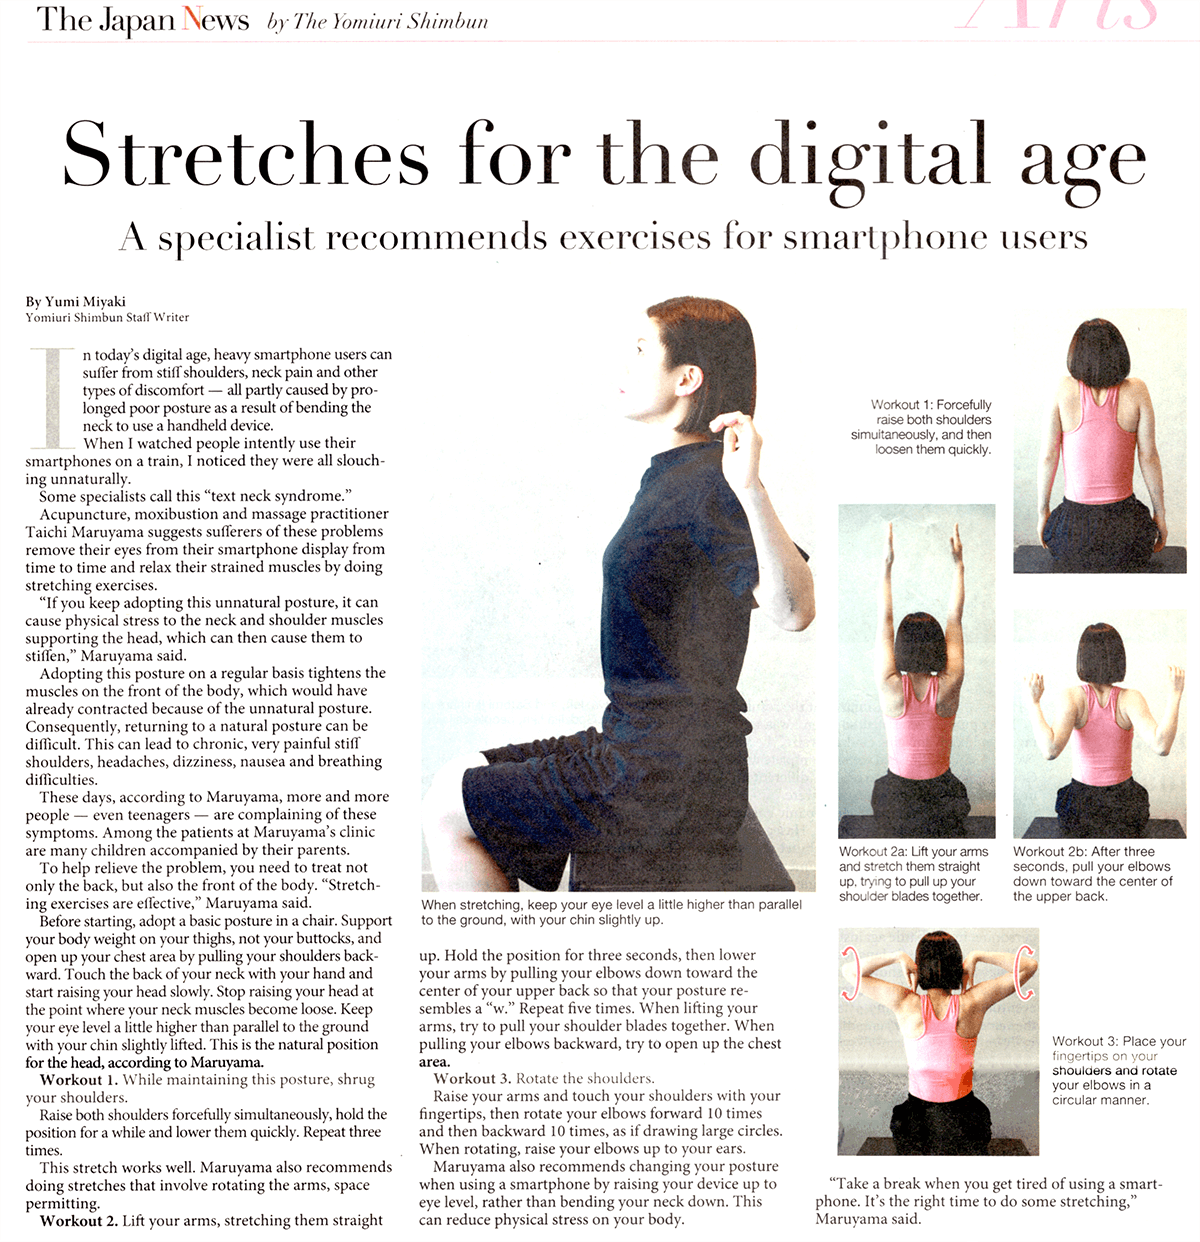 Stretches for the digital age